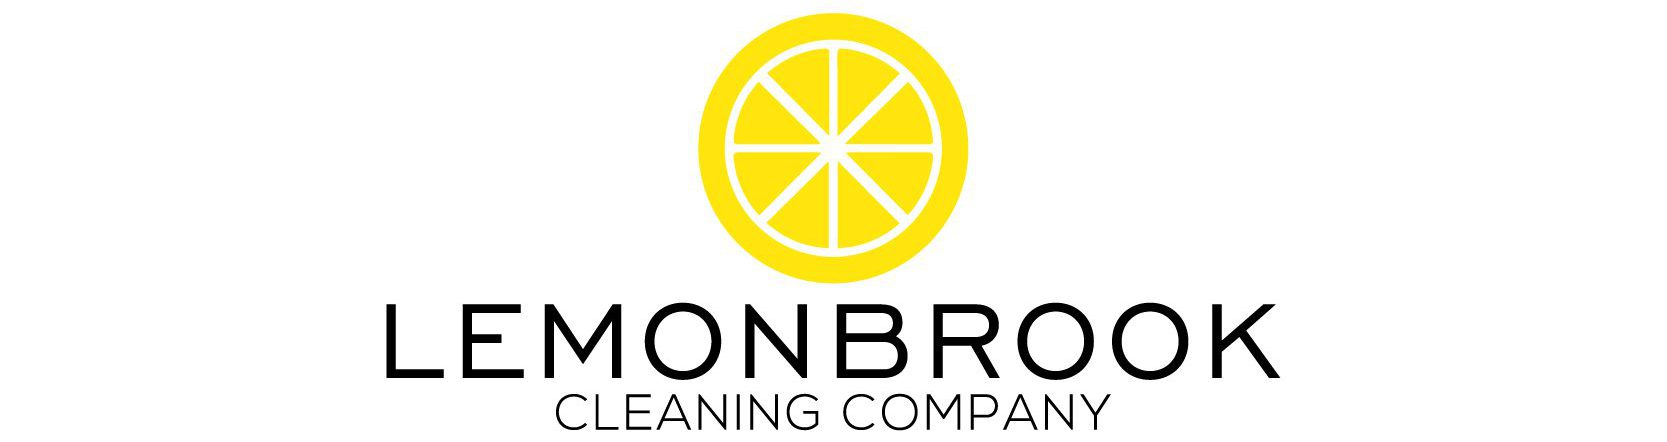 Lemonbrook Cleaning Company